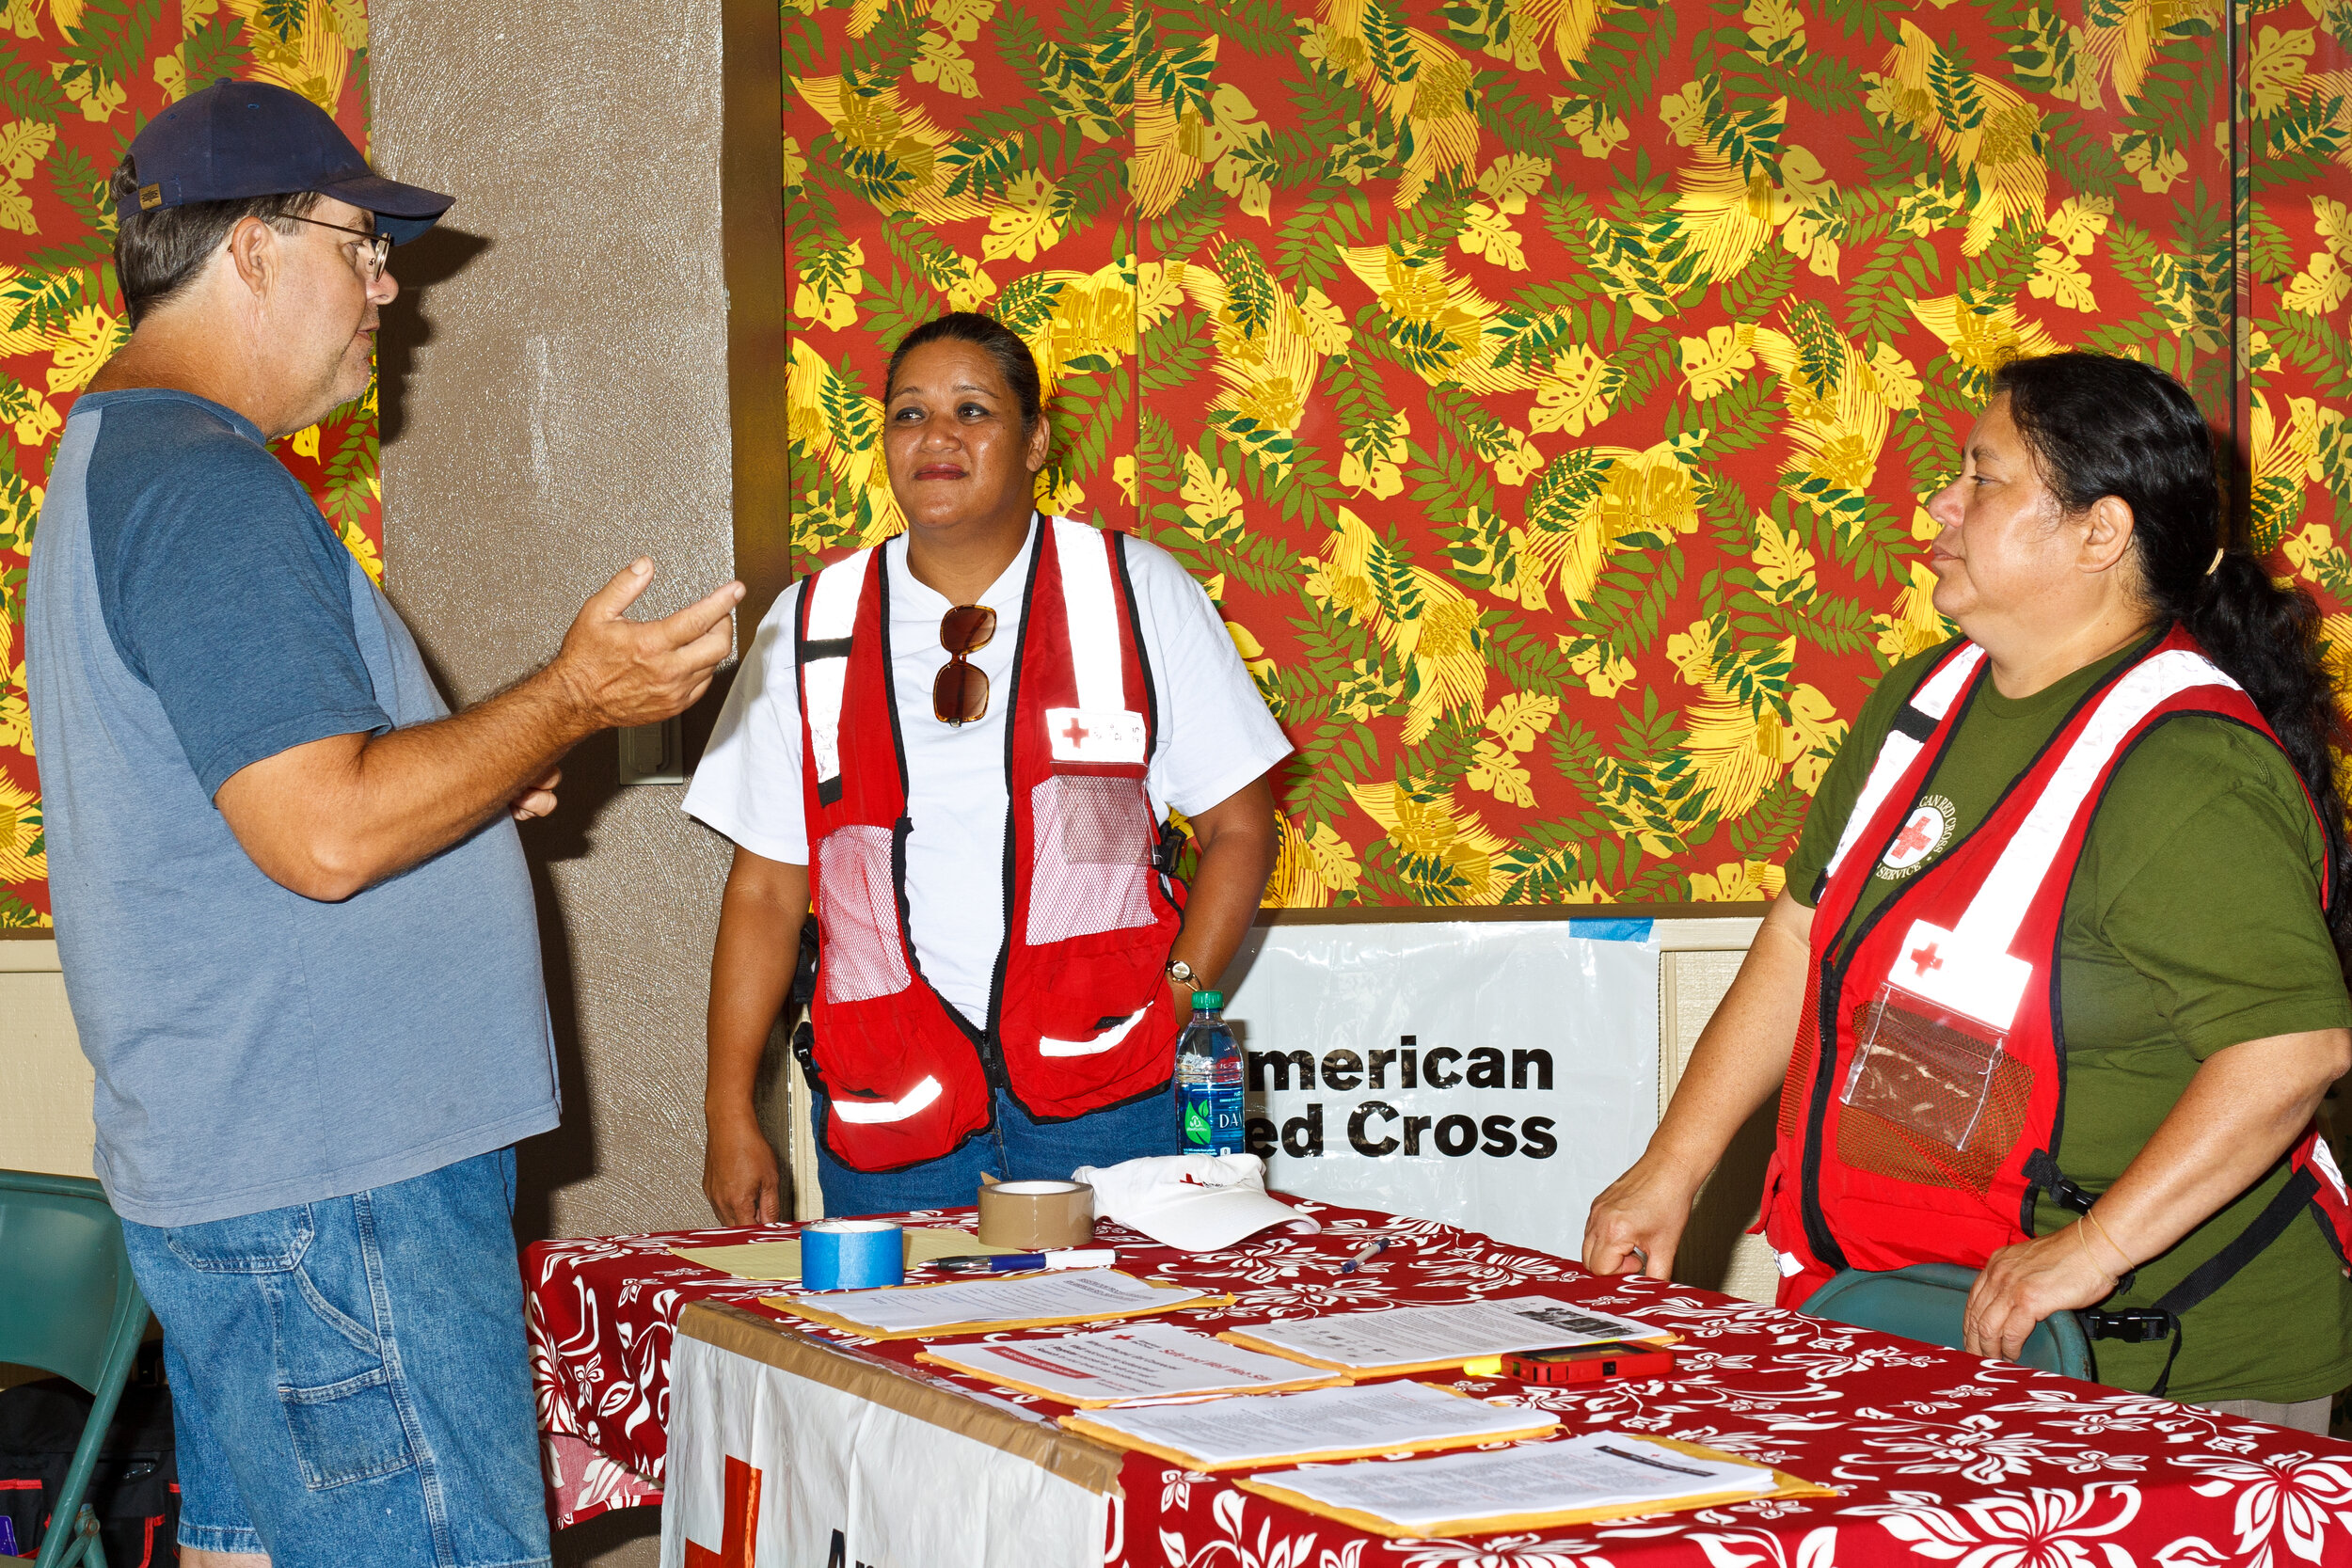 Support for the American Red Cross because they help so many at crucial times and natural disasters.